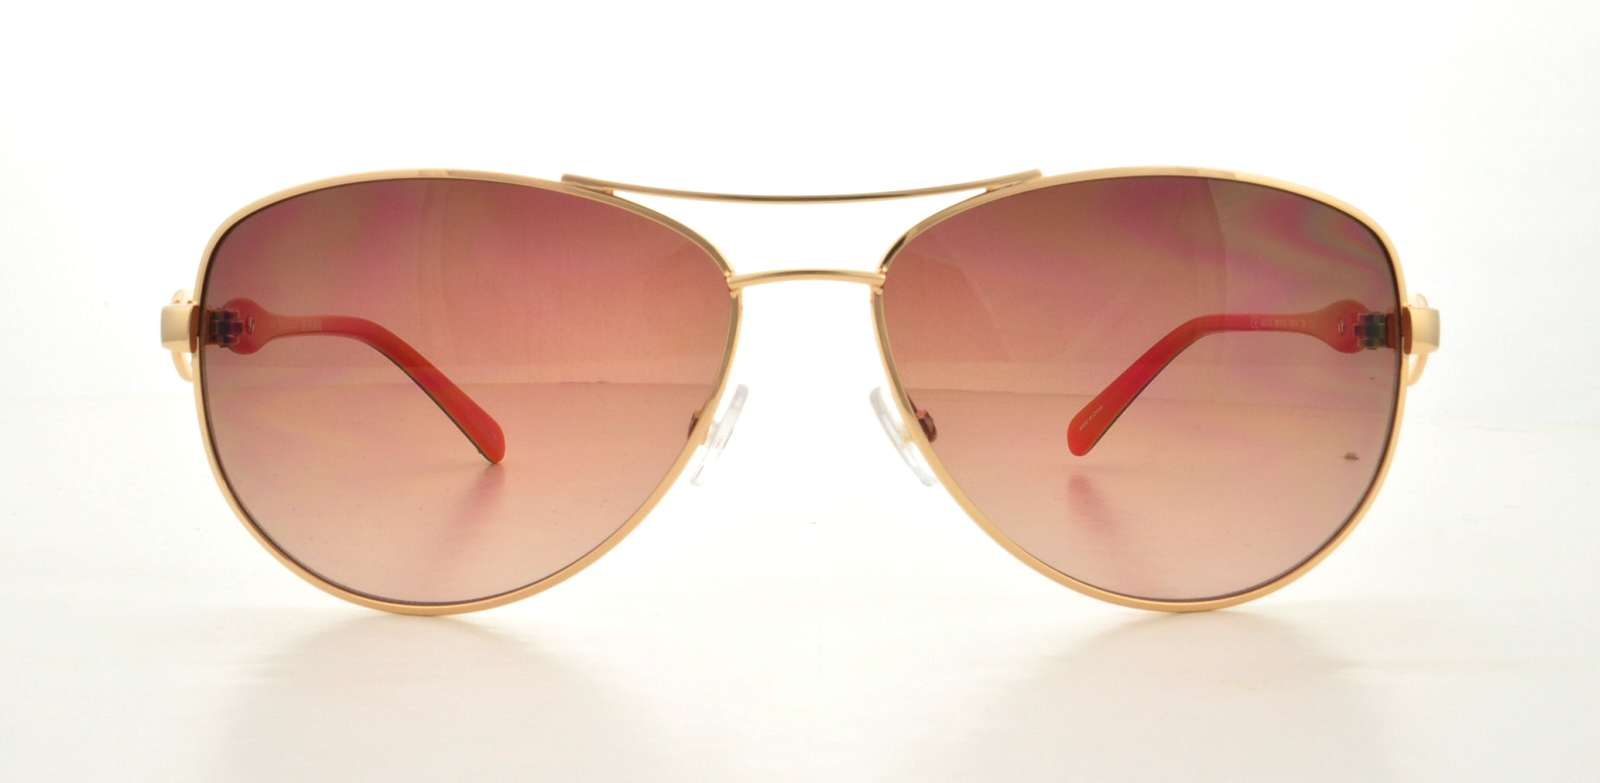 d8fe26d5cf Juicy Couture Aviator Sunglasses Pink « One More Soul